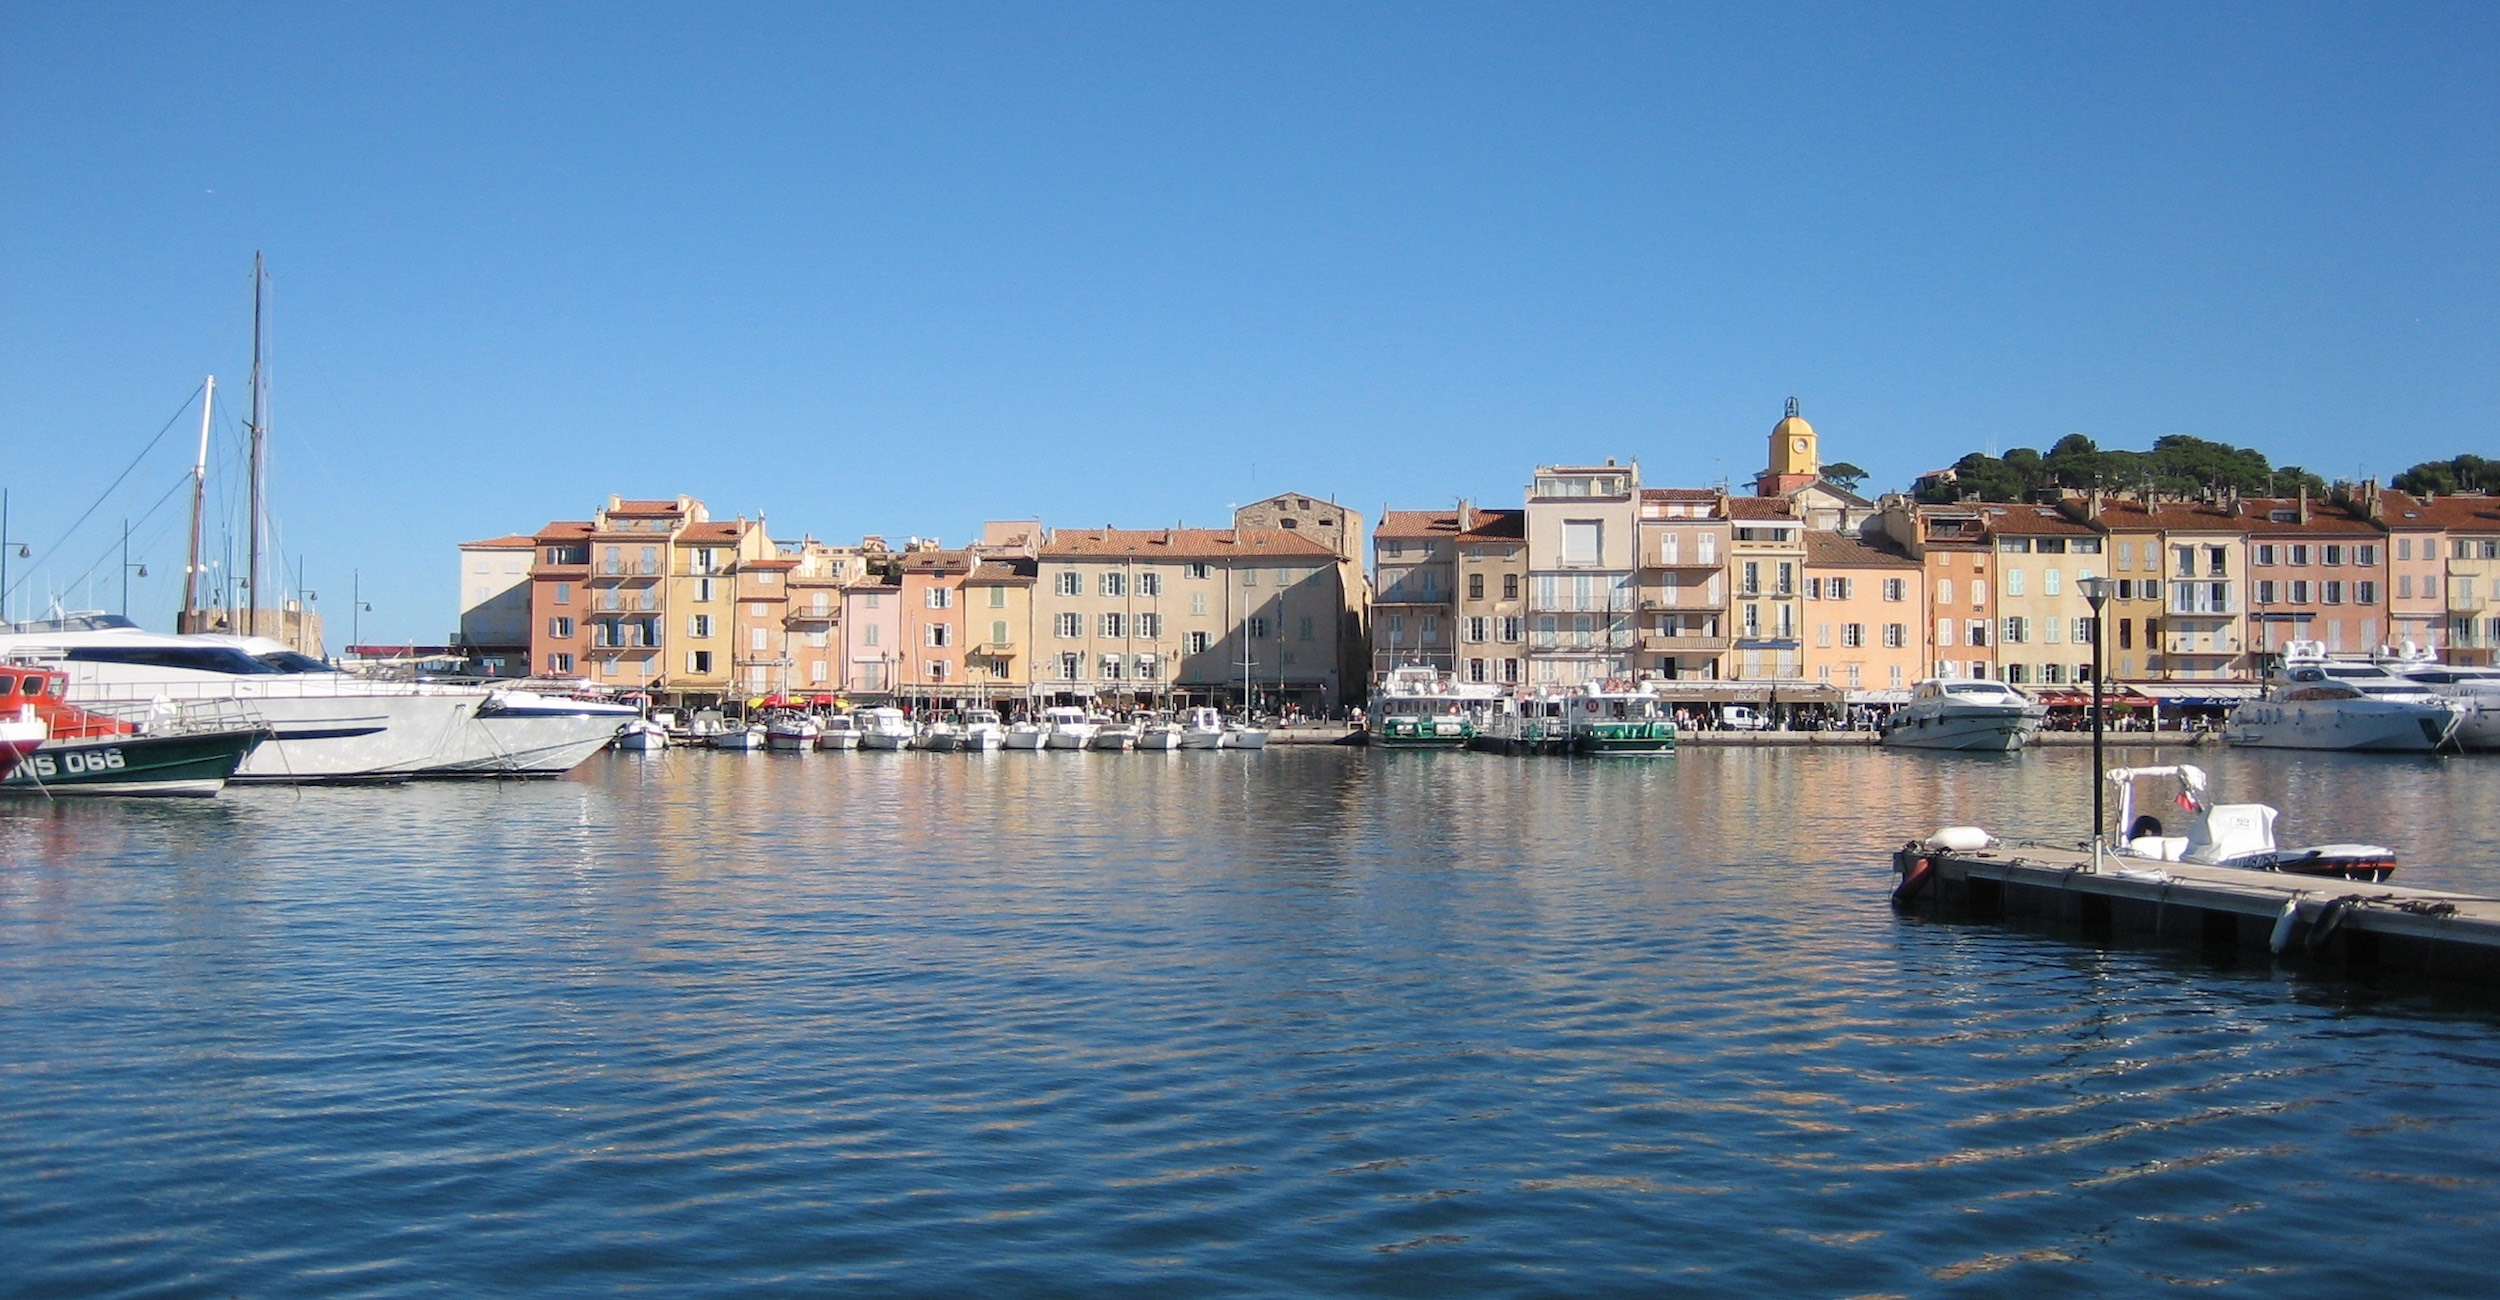 Full Day Private Tour Of Saint Tropez And Port Grimaud